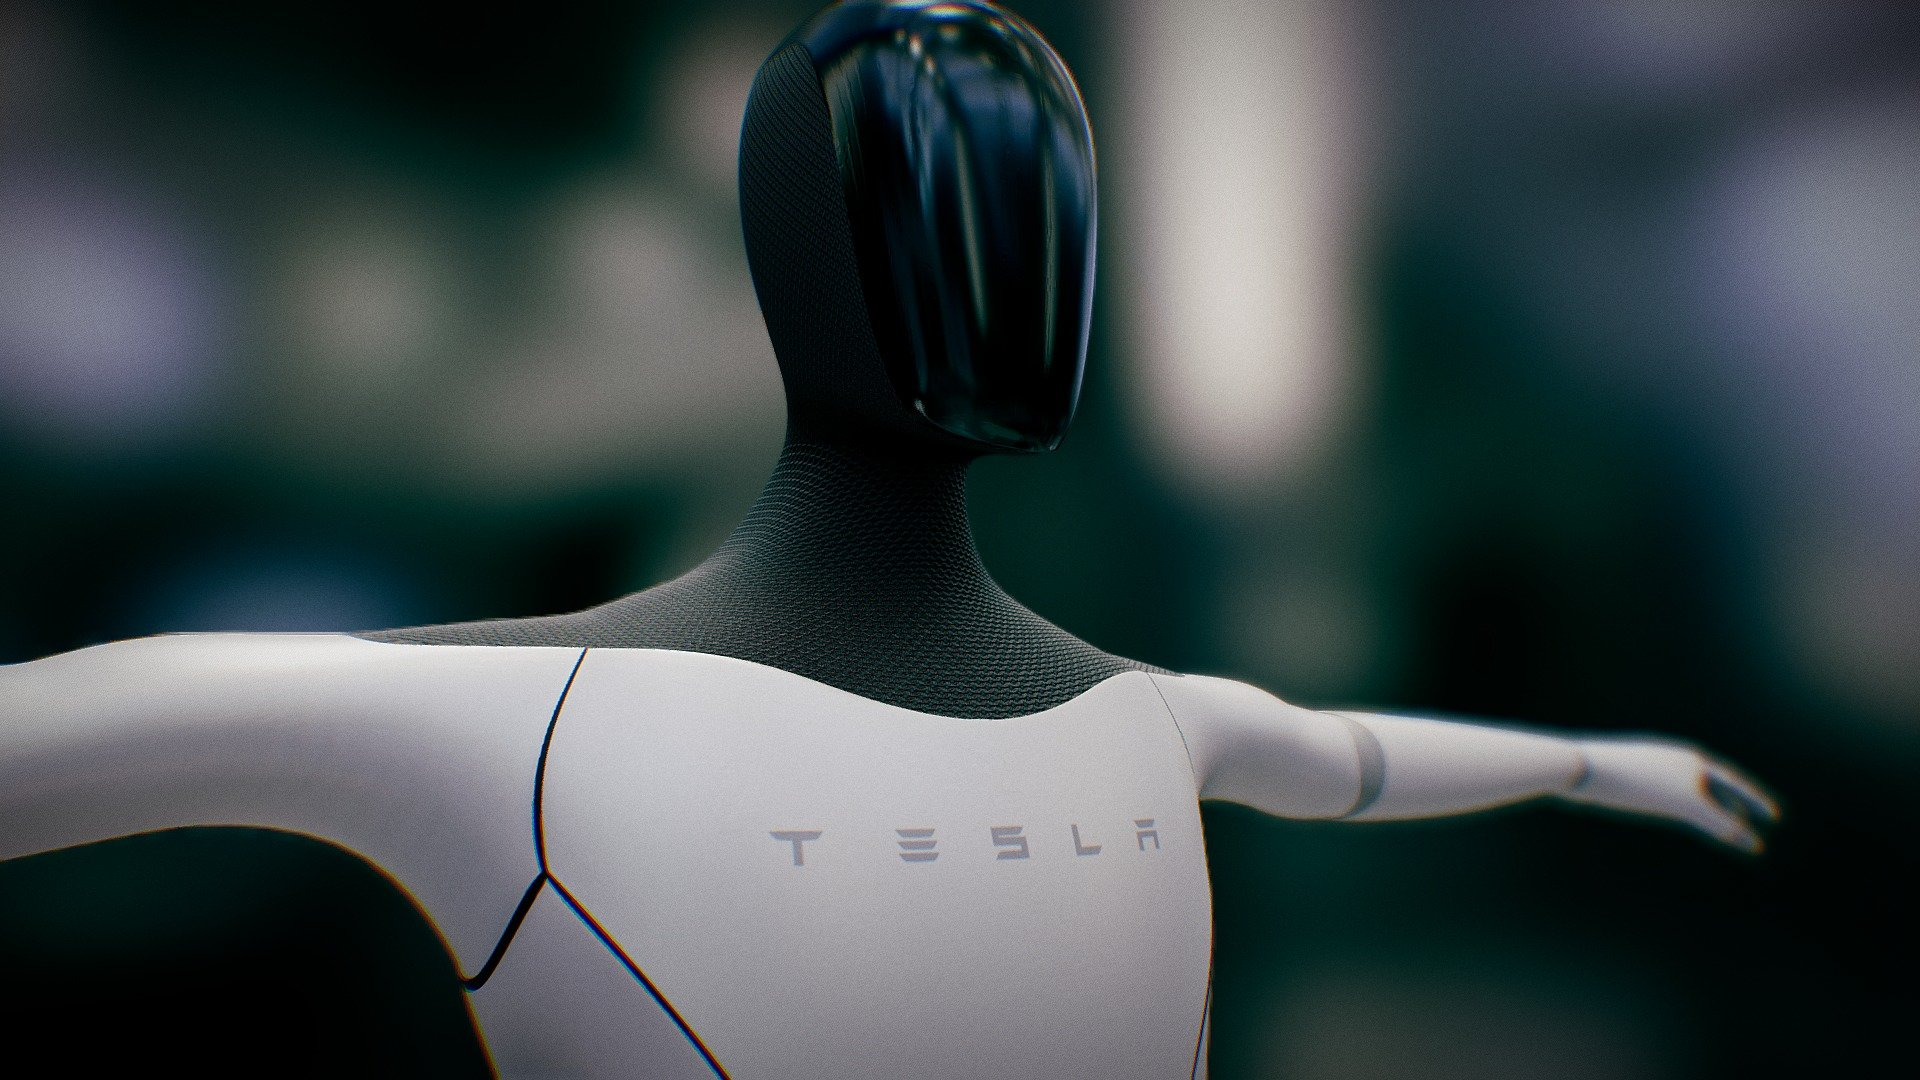 They'll be back: Why we should embrace, not fear robots